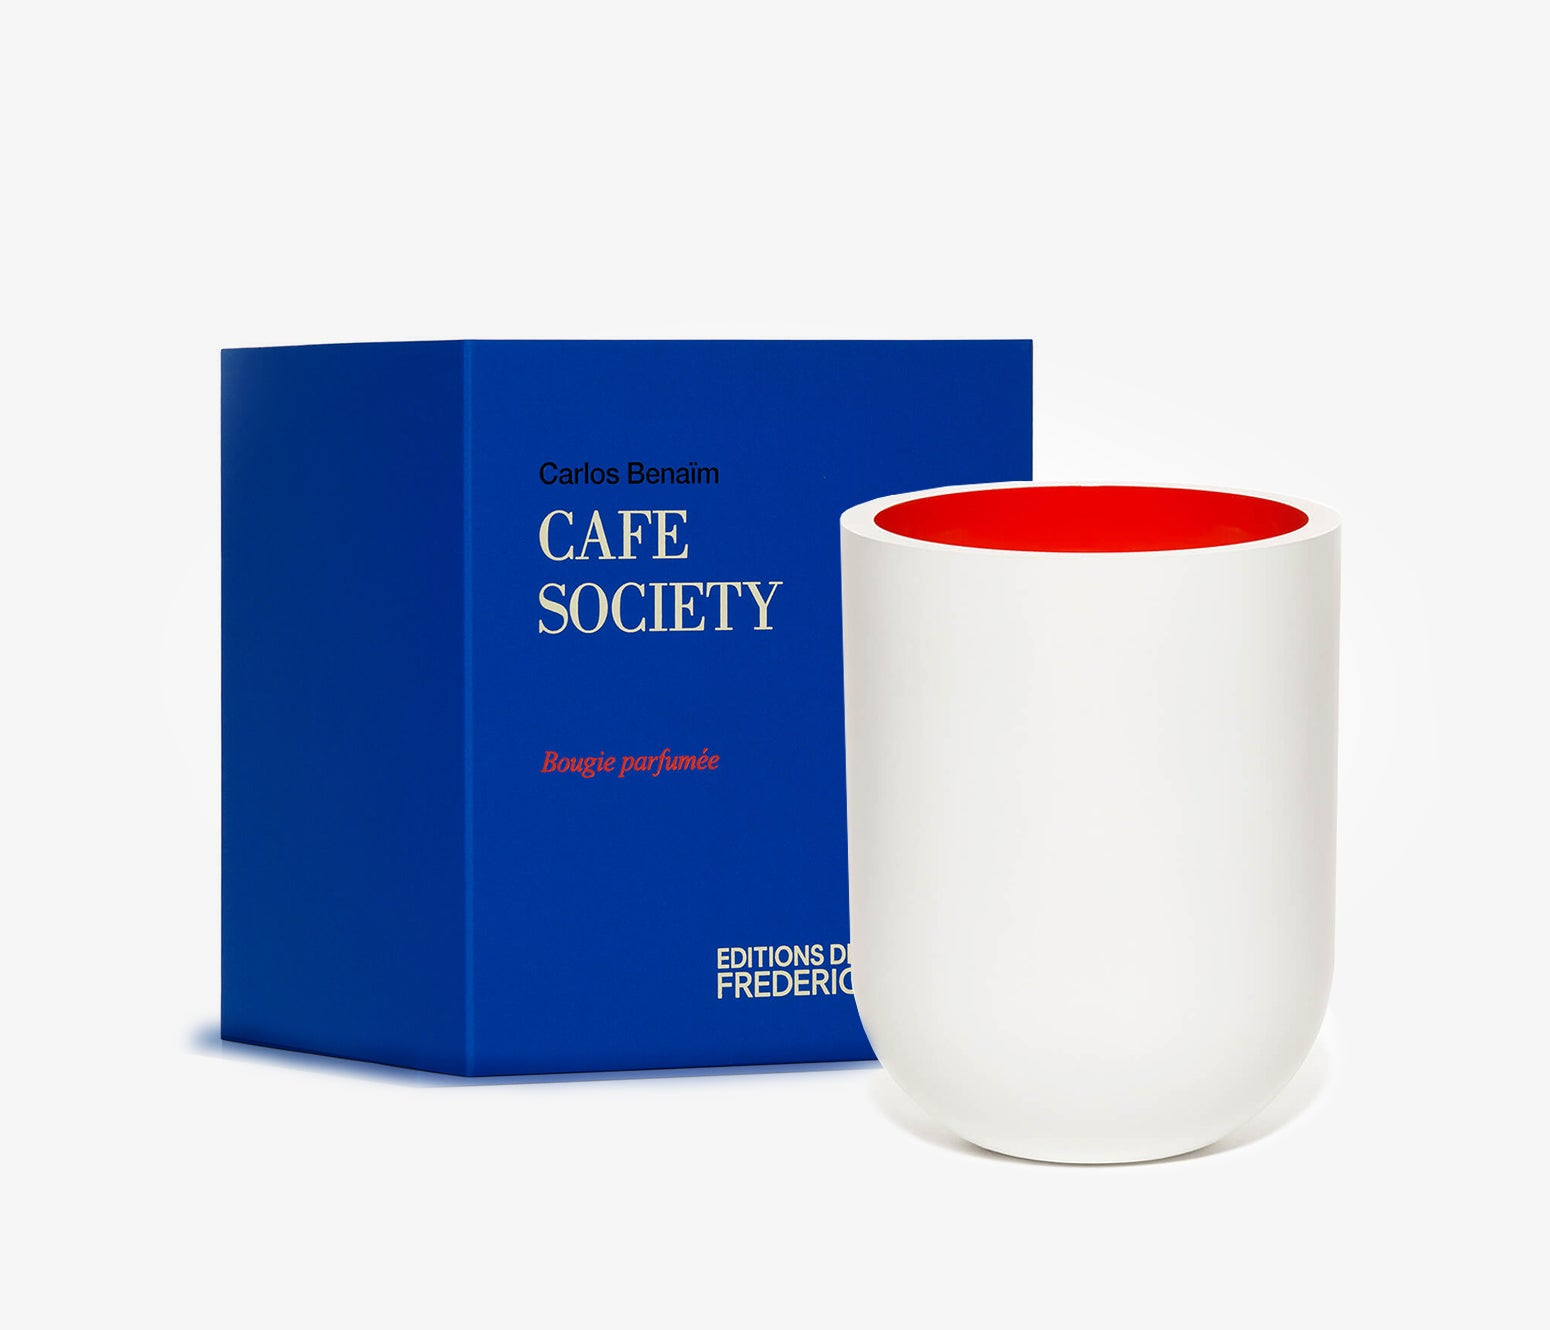 Frederic Malle - Cafe Society Candle - 220g - BCP3359 - product image - Candle - Les Senteurs